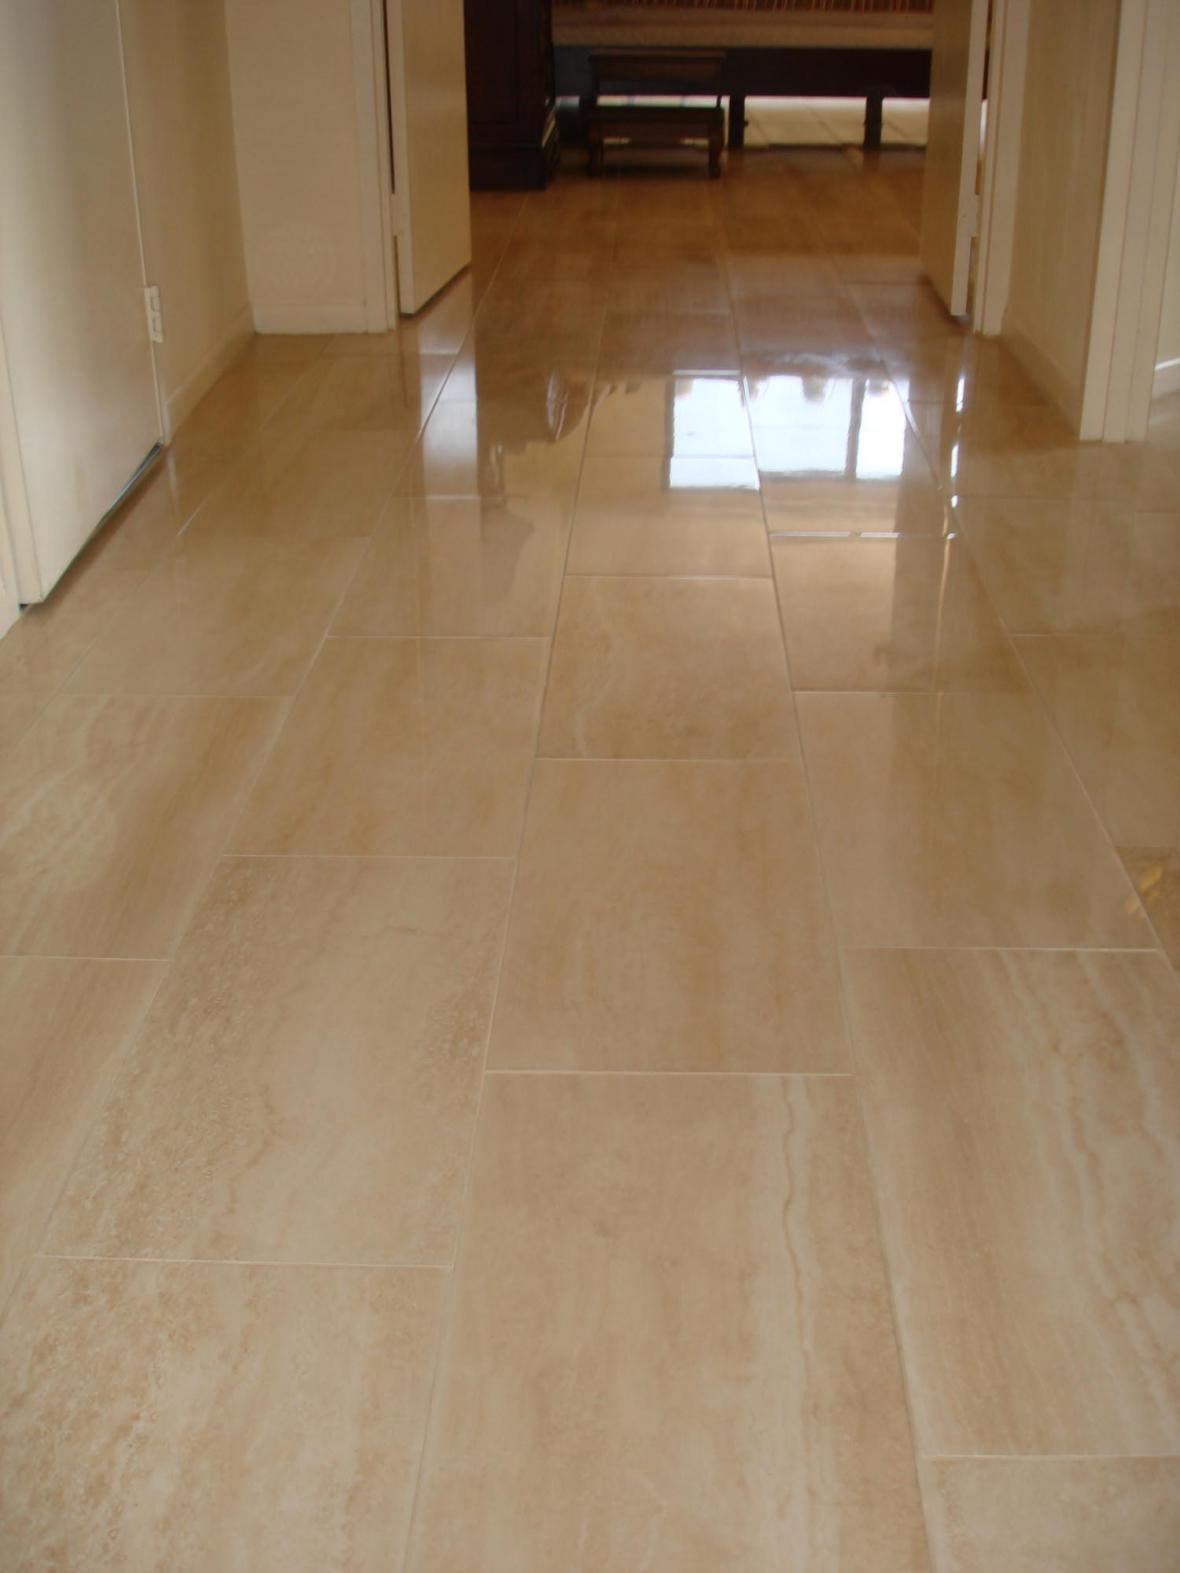 Porcelain Tile Floor In Hallway New Jersey Custom Tile